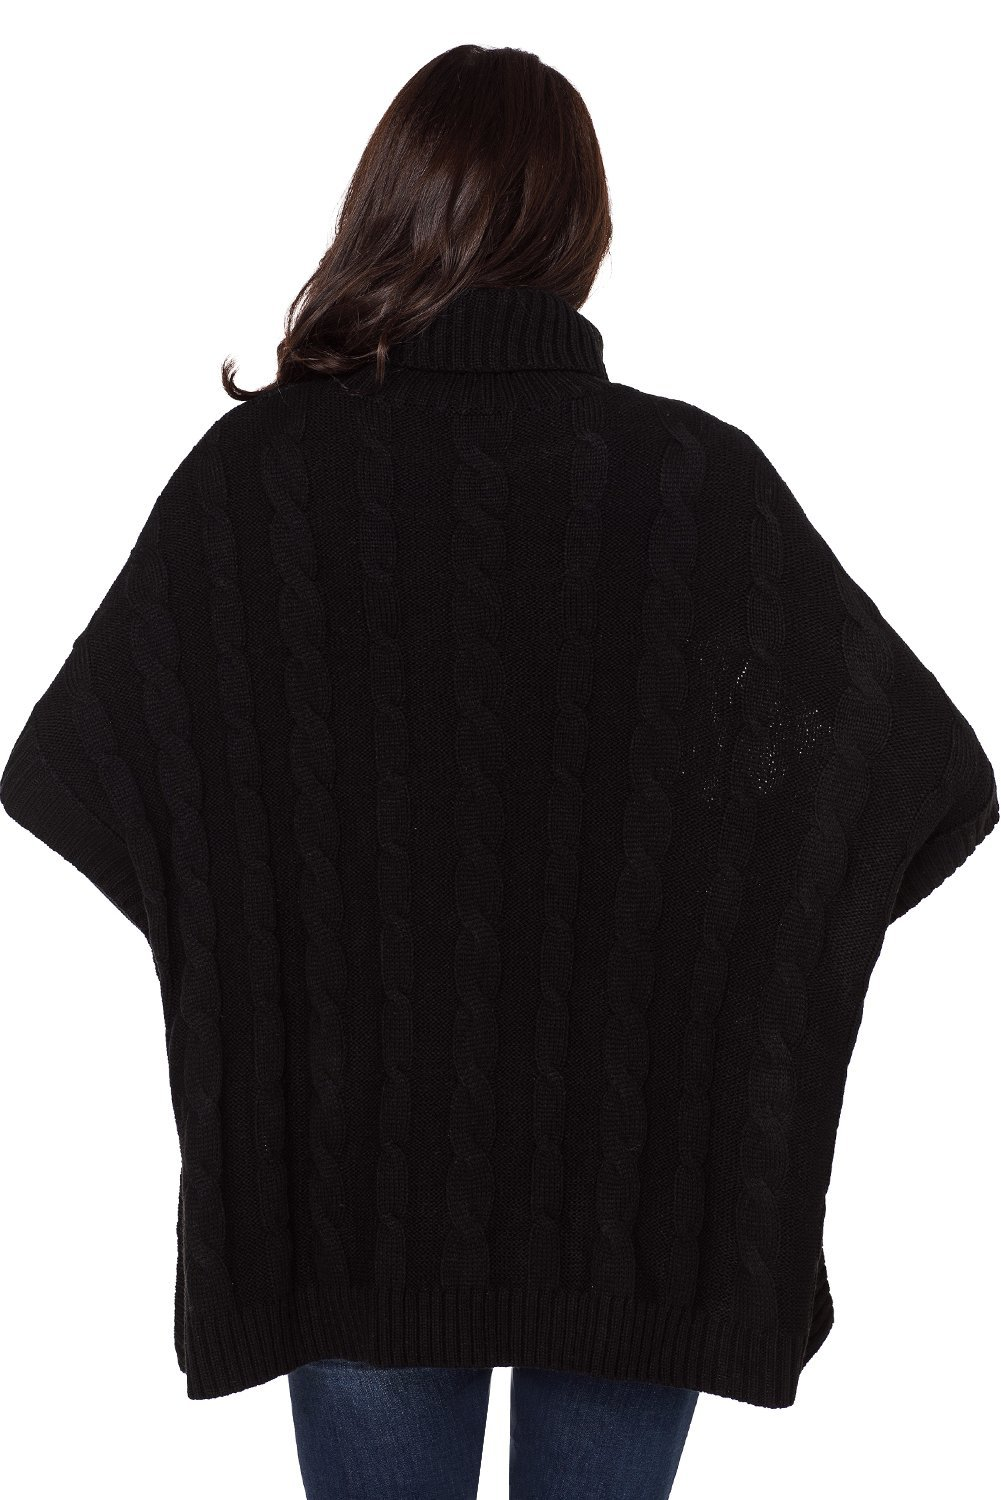 Elapsy Womens Ladies Knit Turtleneck Batwing Sleeve Casual Warm Pockets Style Tunic Poncho Pullover Sweater Oversize Black by Elapsy (Image #2)